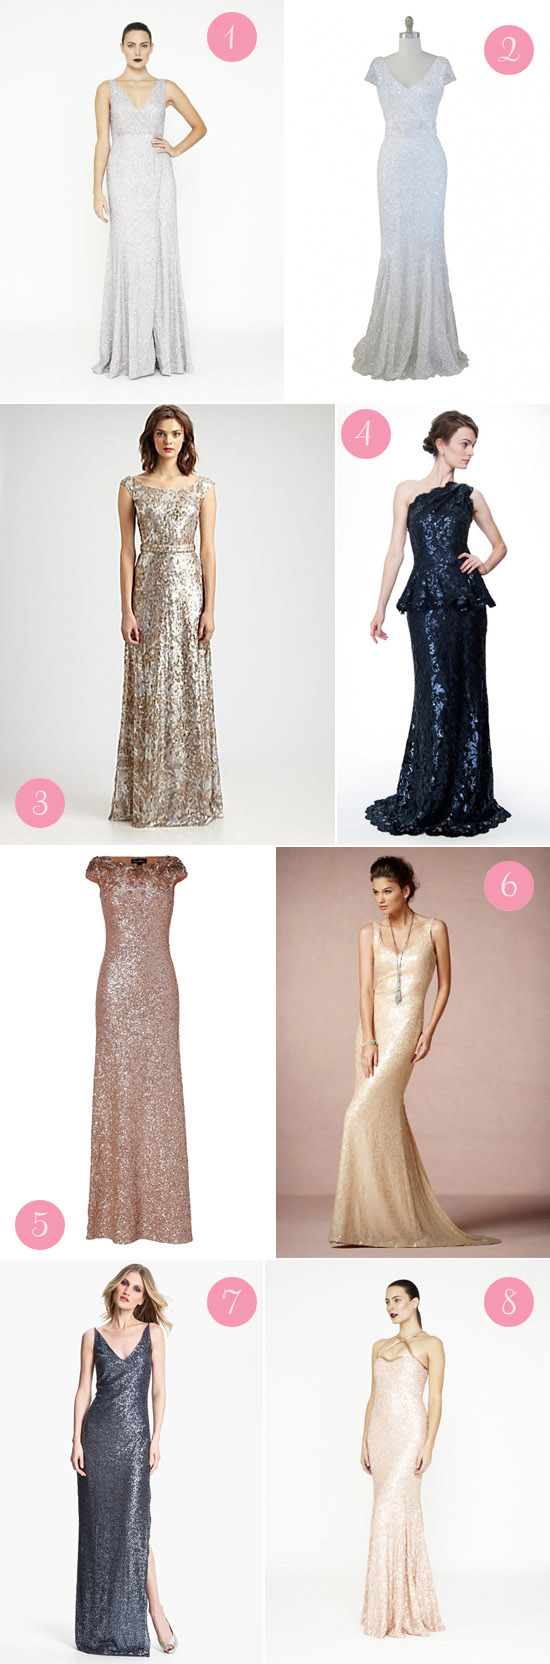 sequin wedding gowns